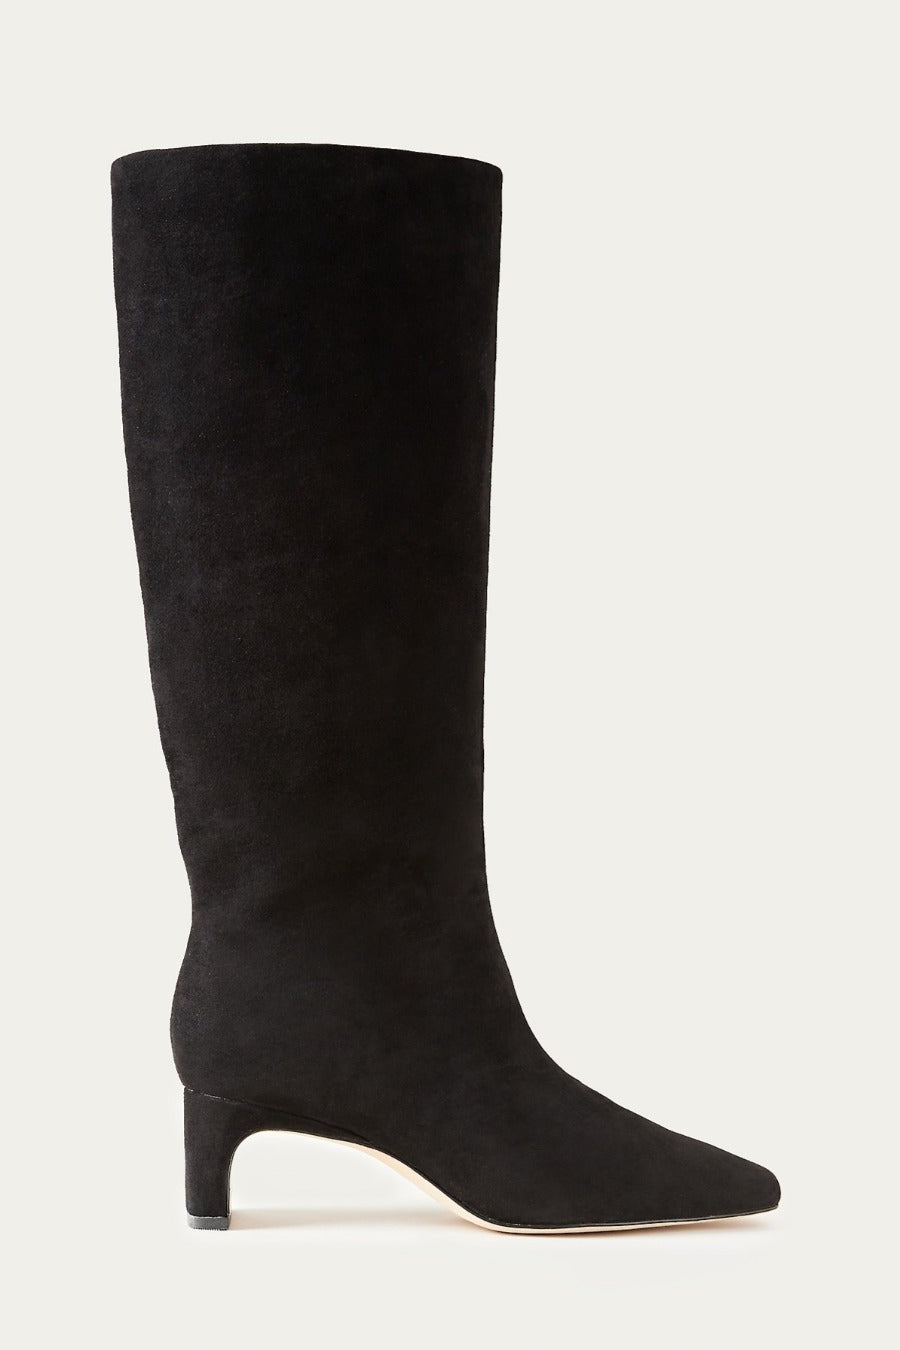 Leighton Tall Boot Black